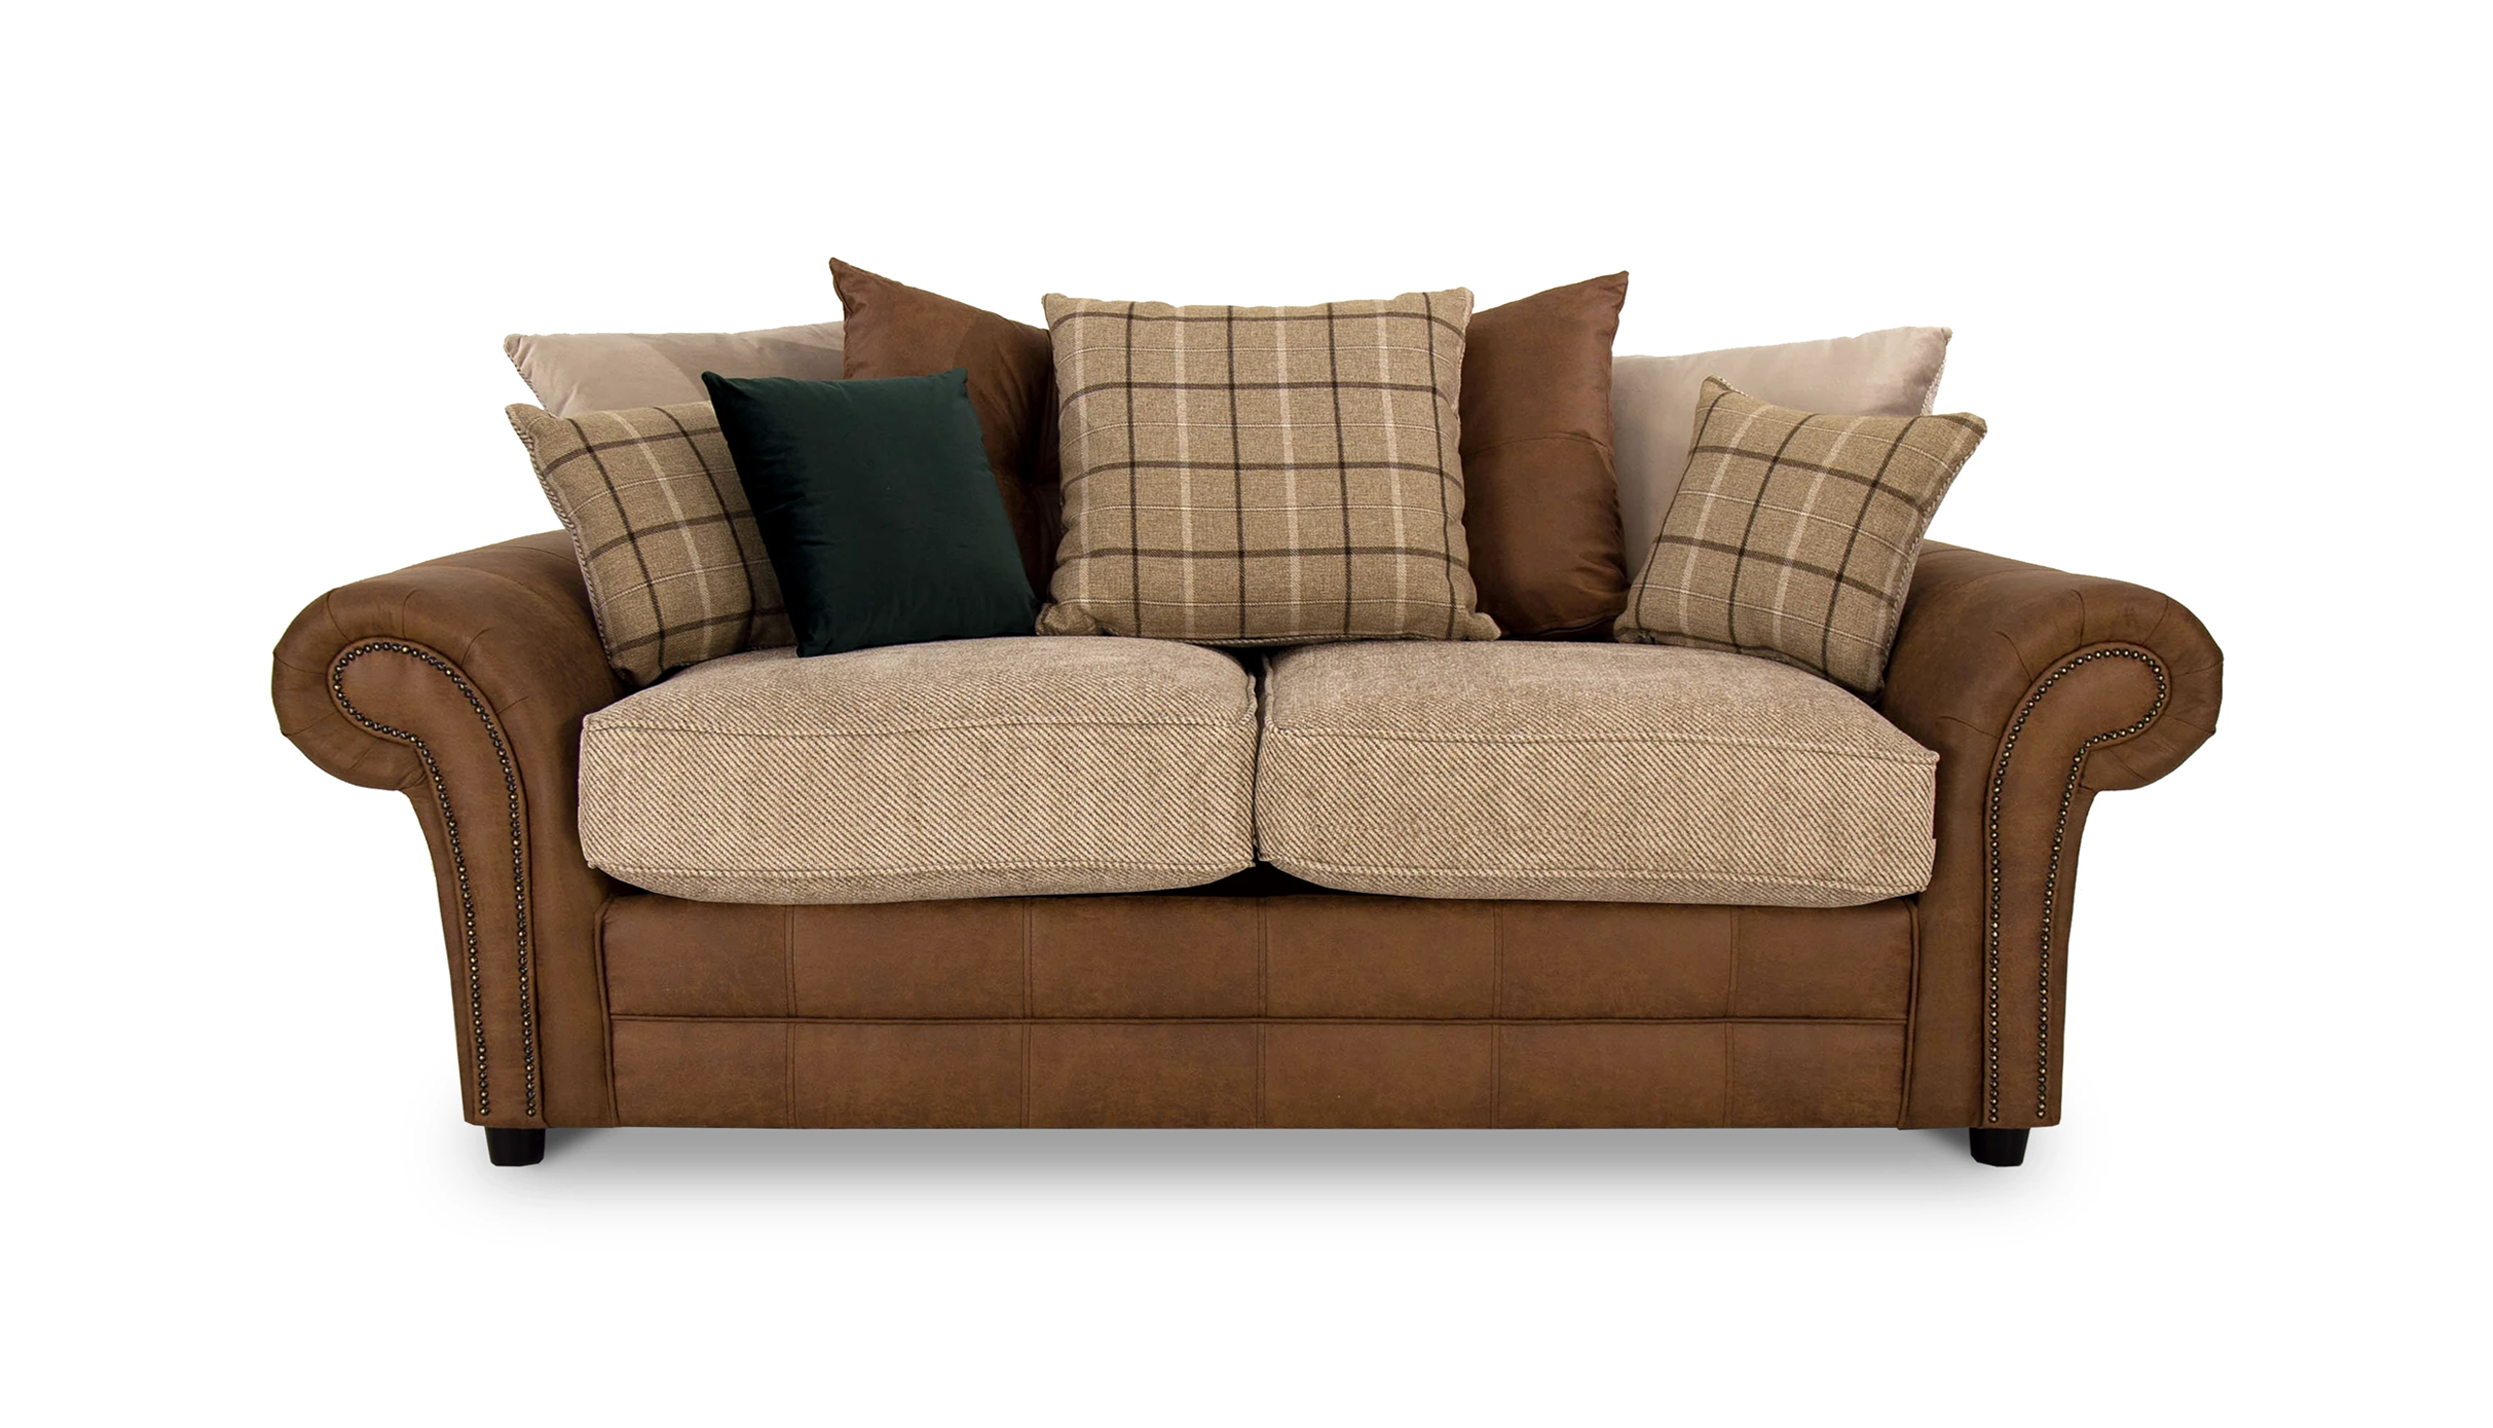 Marshall 3 Seater Scatter Back Sofa Bed